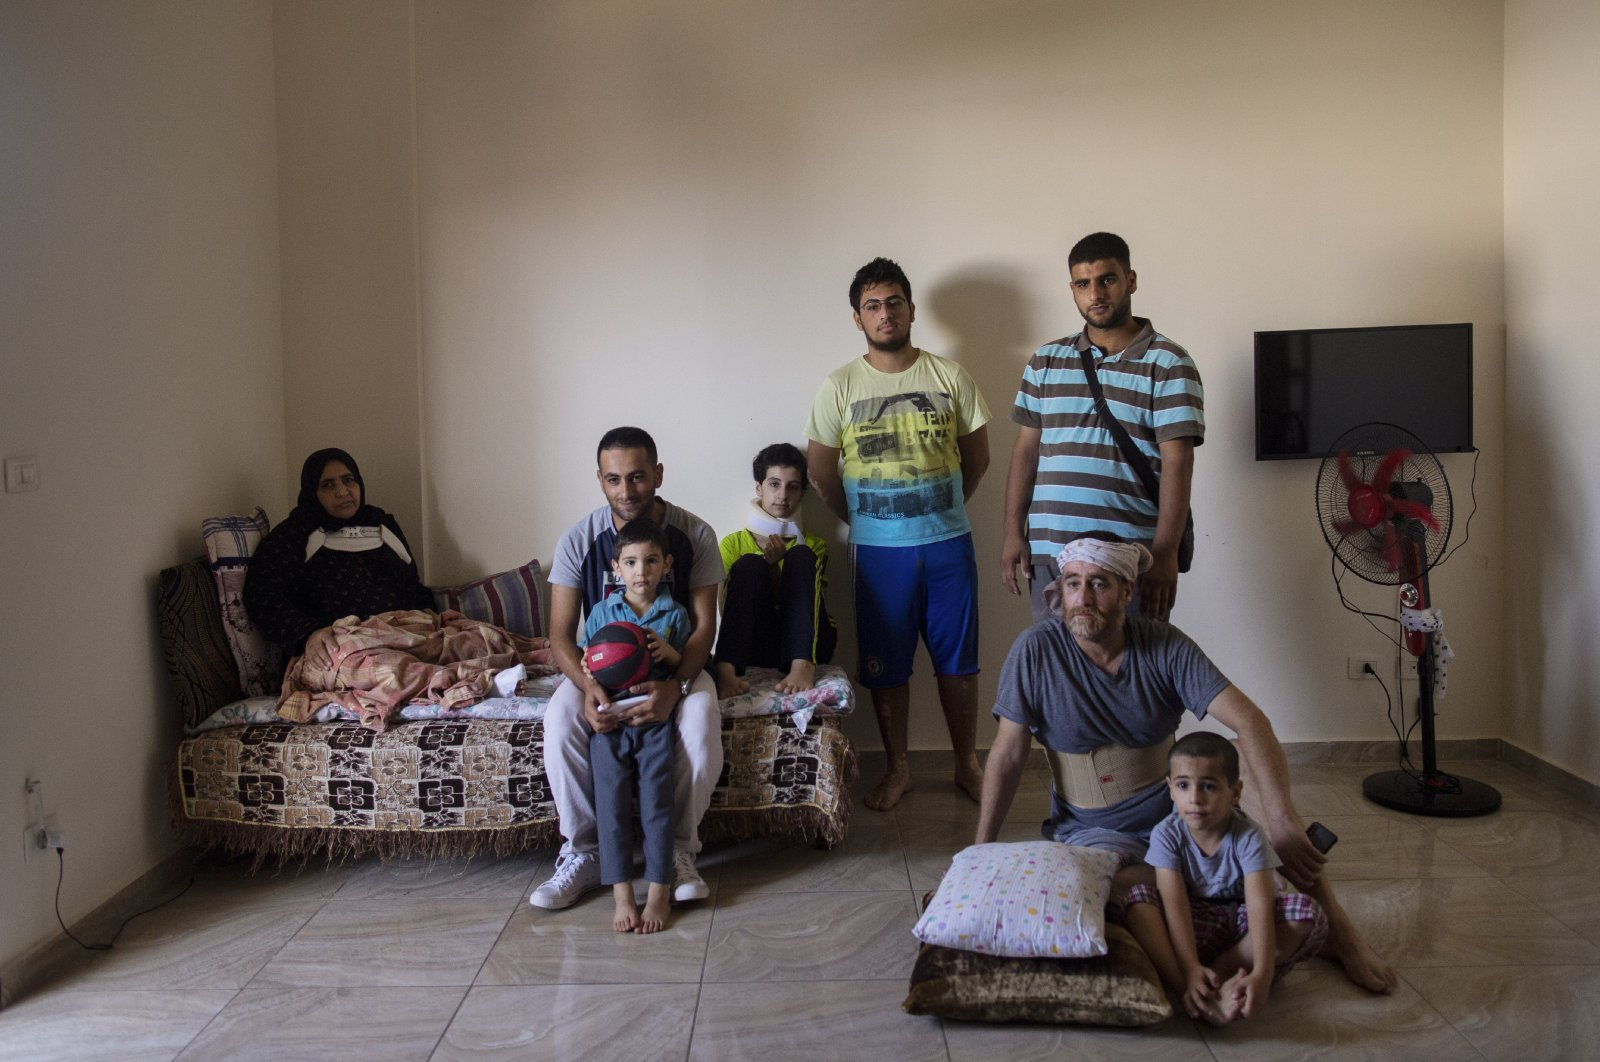 New regime policy hinders Syrians from returning home, rights group says